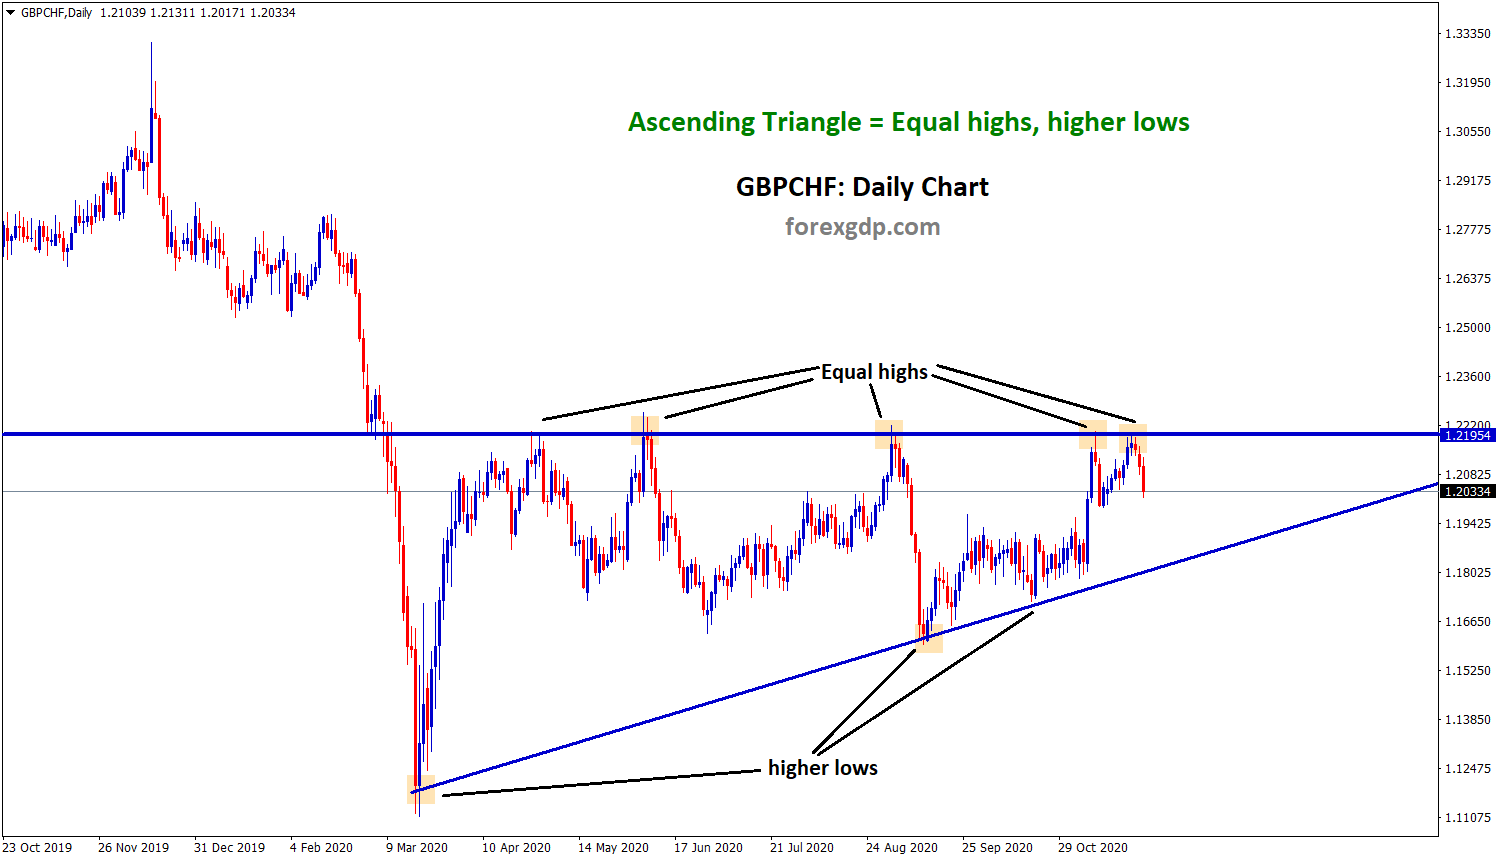 ascending triangle chart pattern in gbpchf